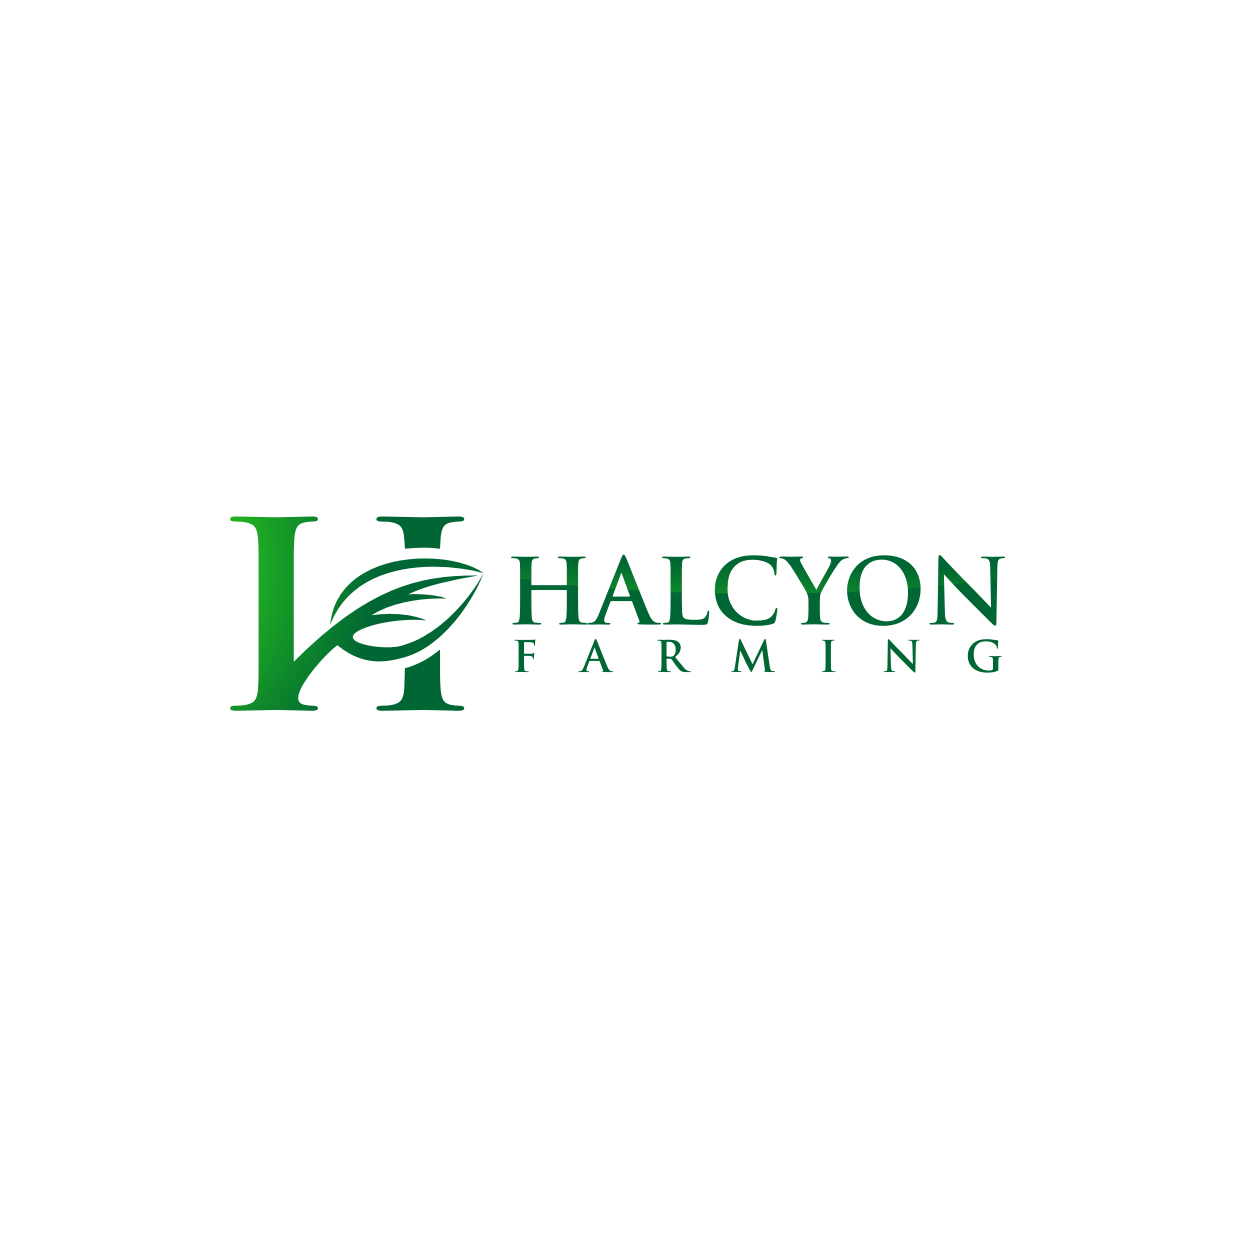 Logo Design by Analla Art - Entry No. 9 in the Logo Design Contest Creative Logo Design for Halcyon Farming.